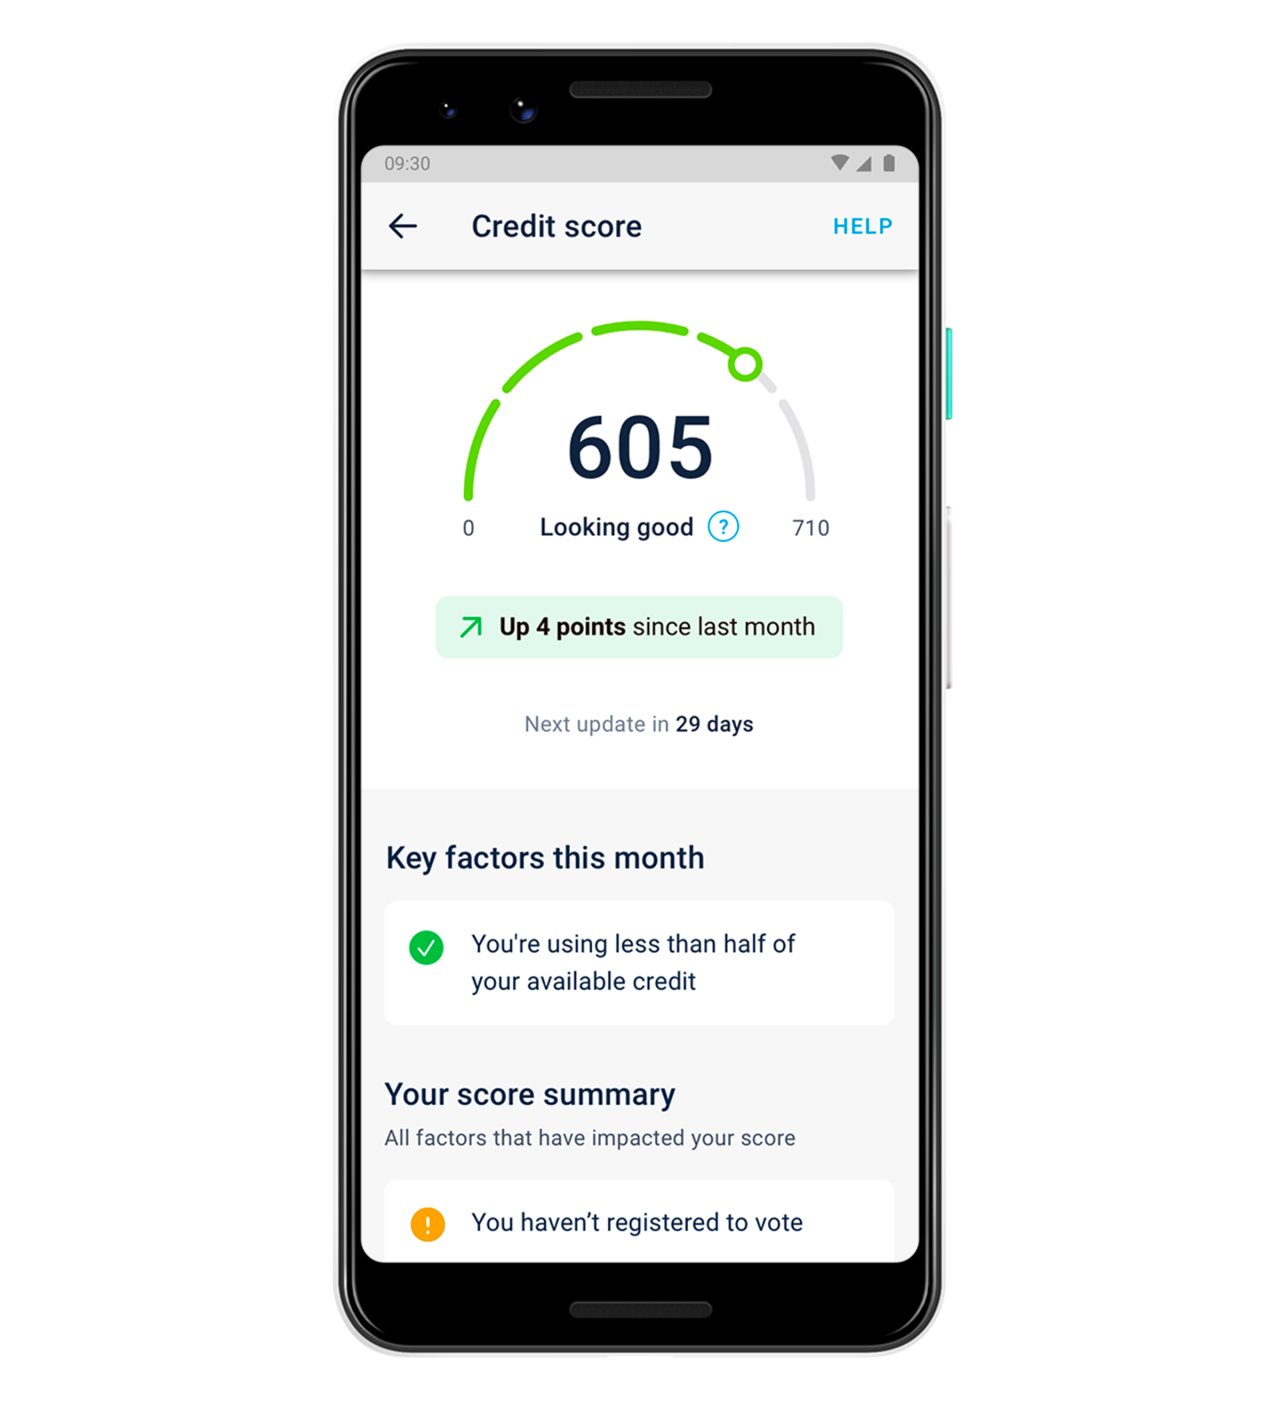 A phone screen showing someone's credit score, and why it's changed.